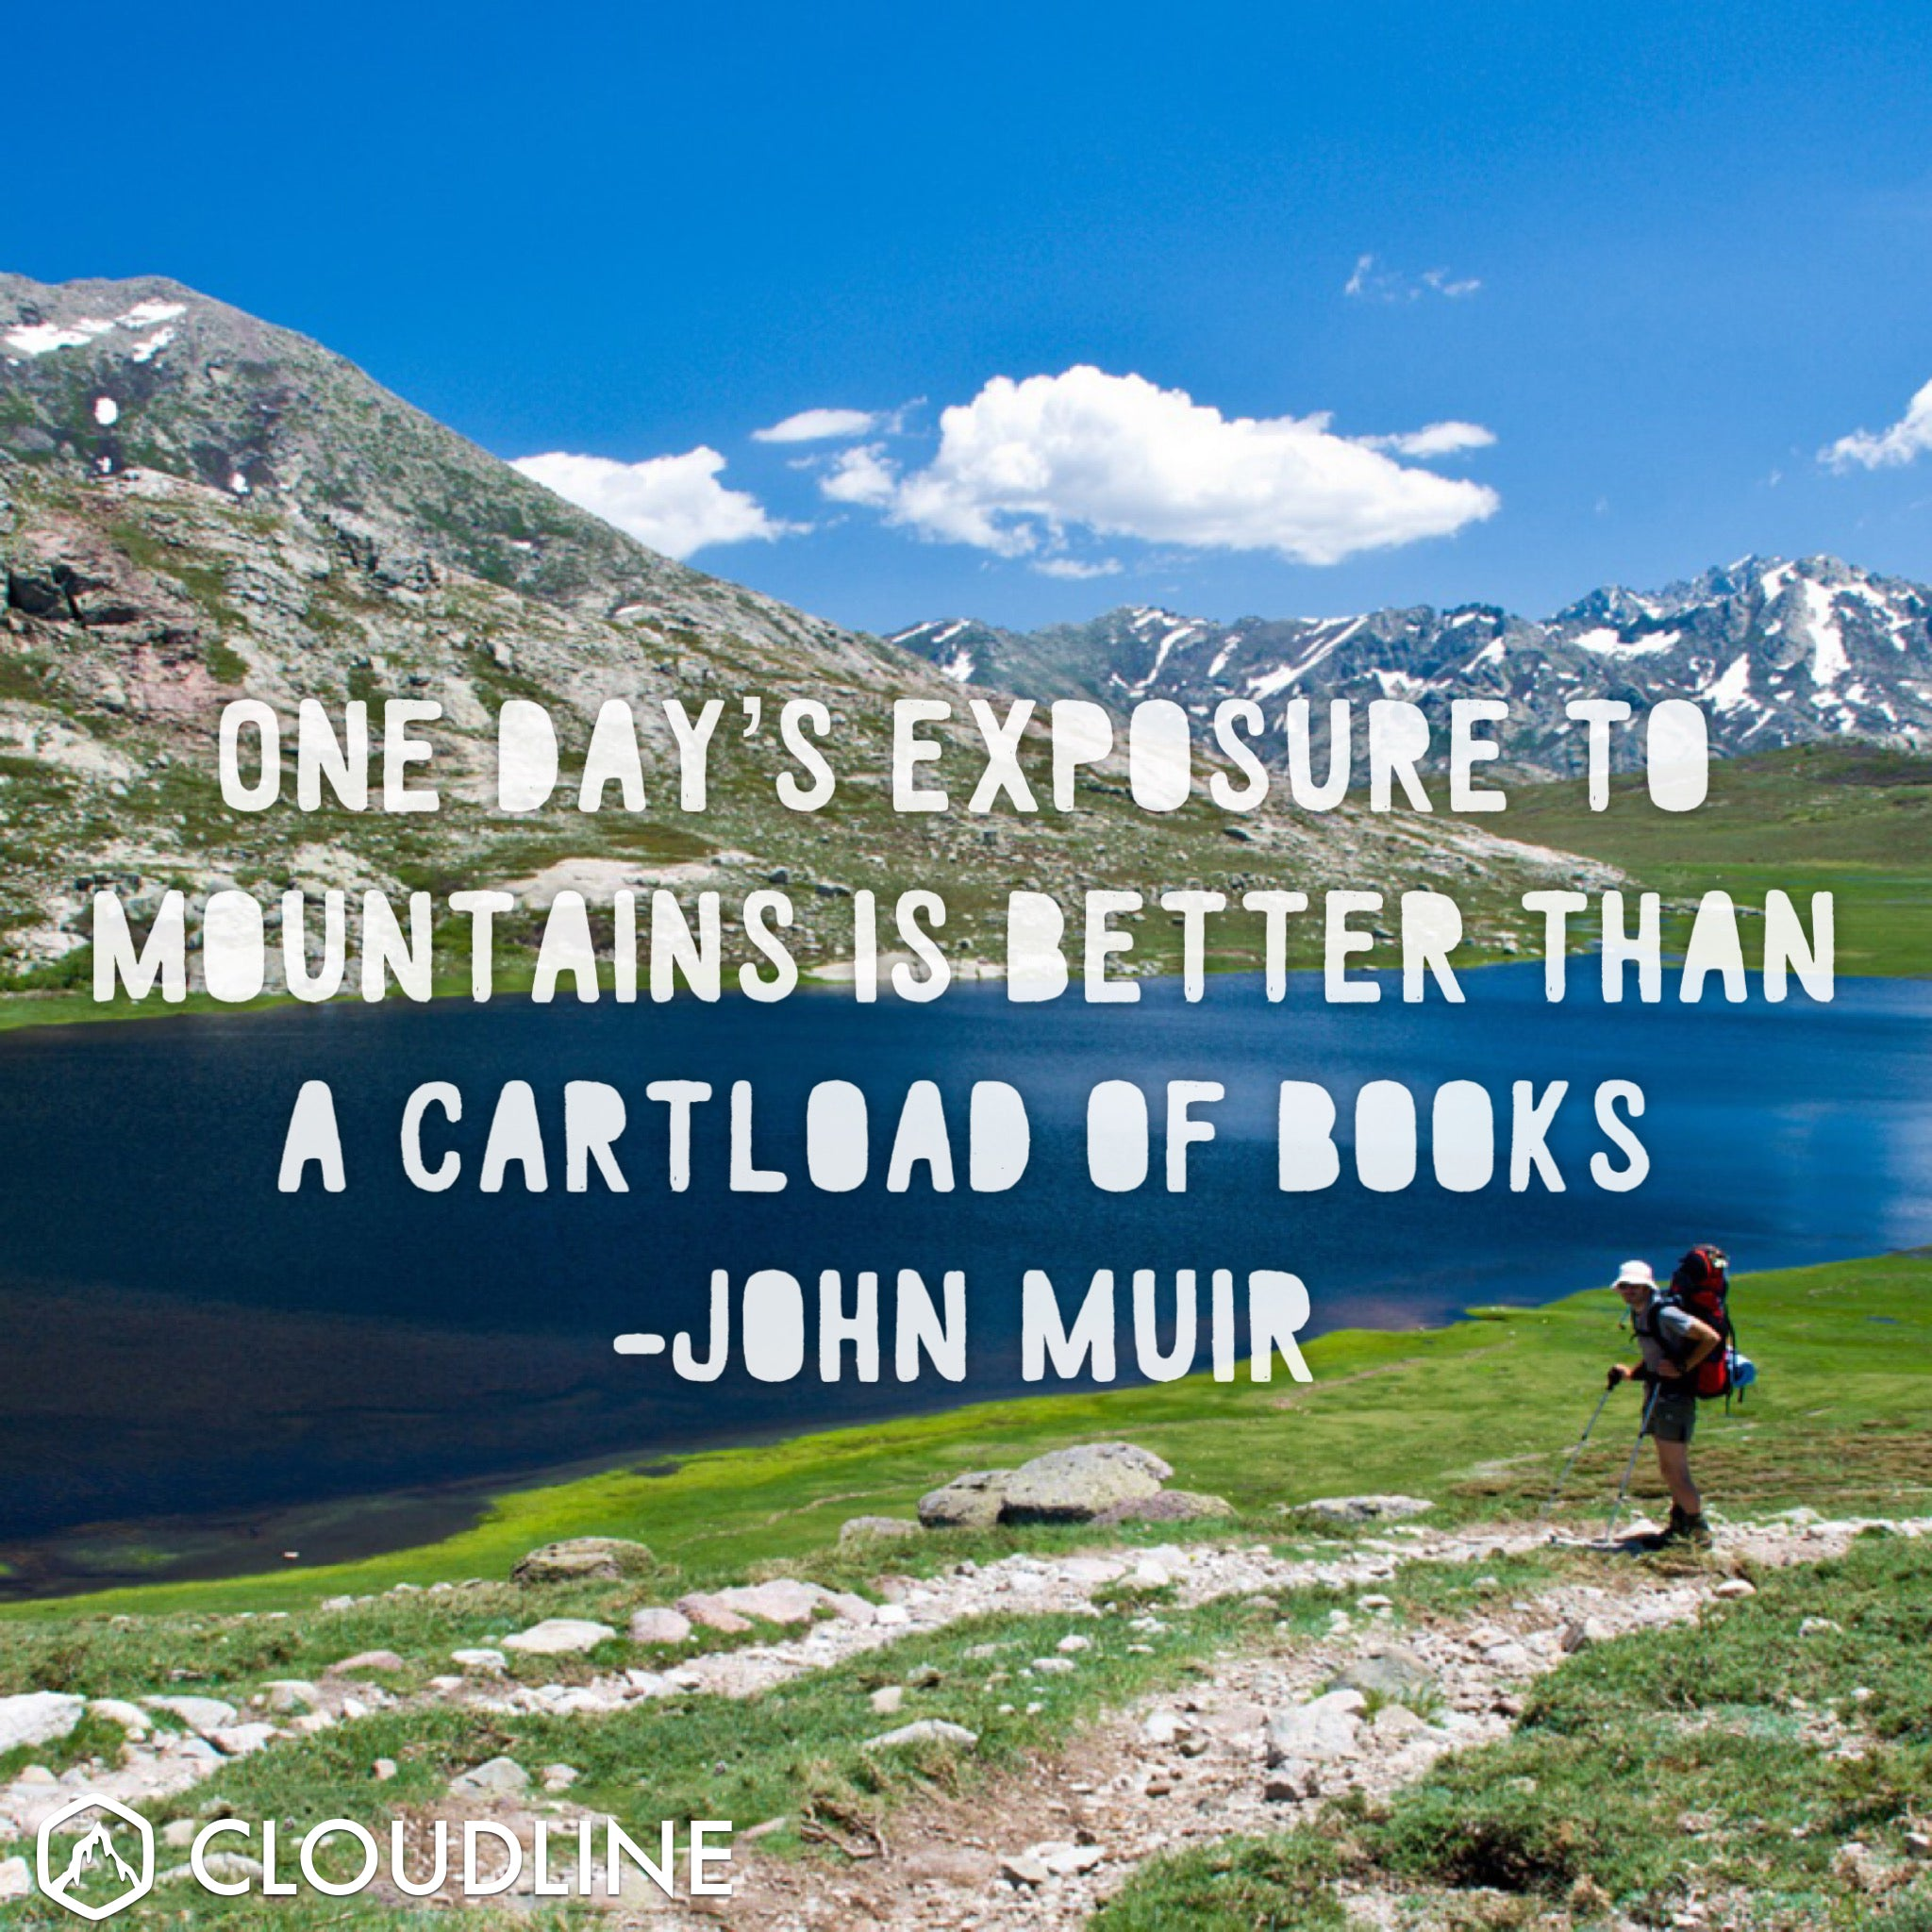 """One day's exposure to mountains is better than a cartload of books."" - John Muir"